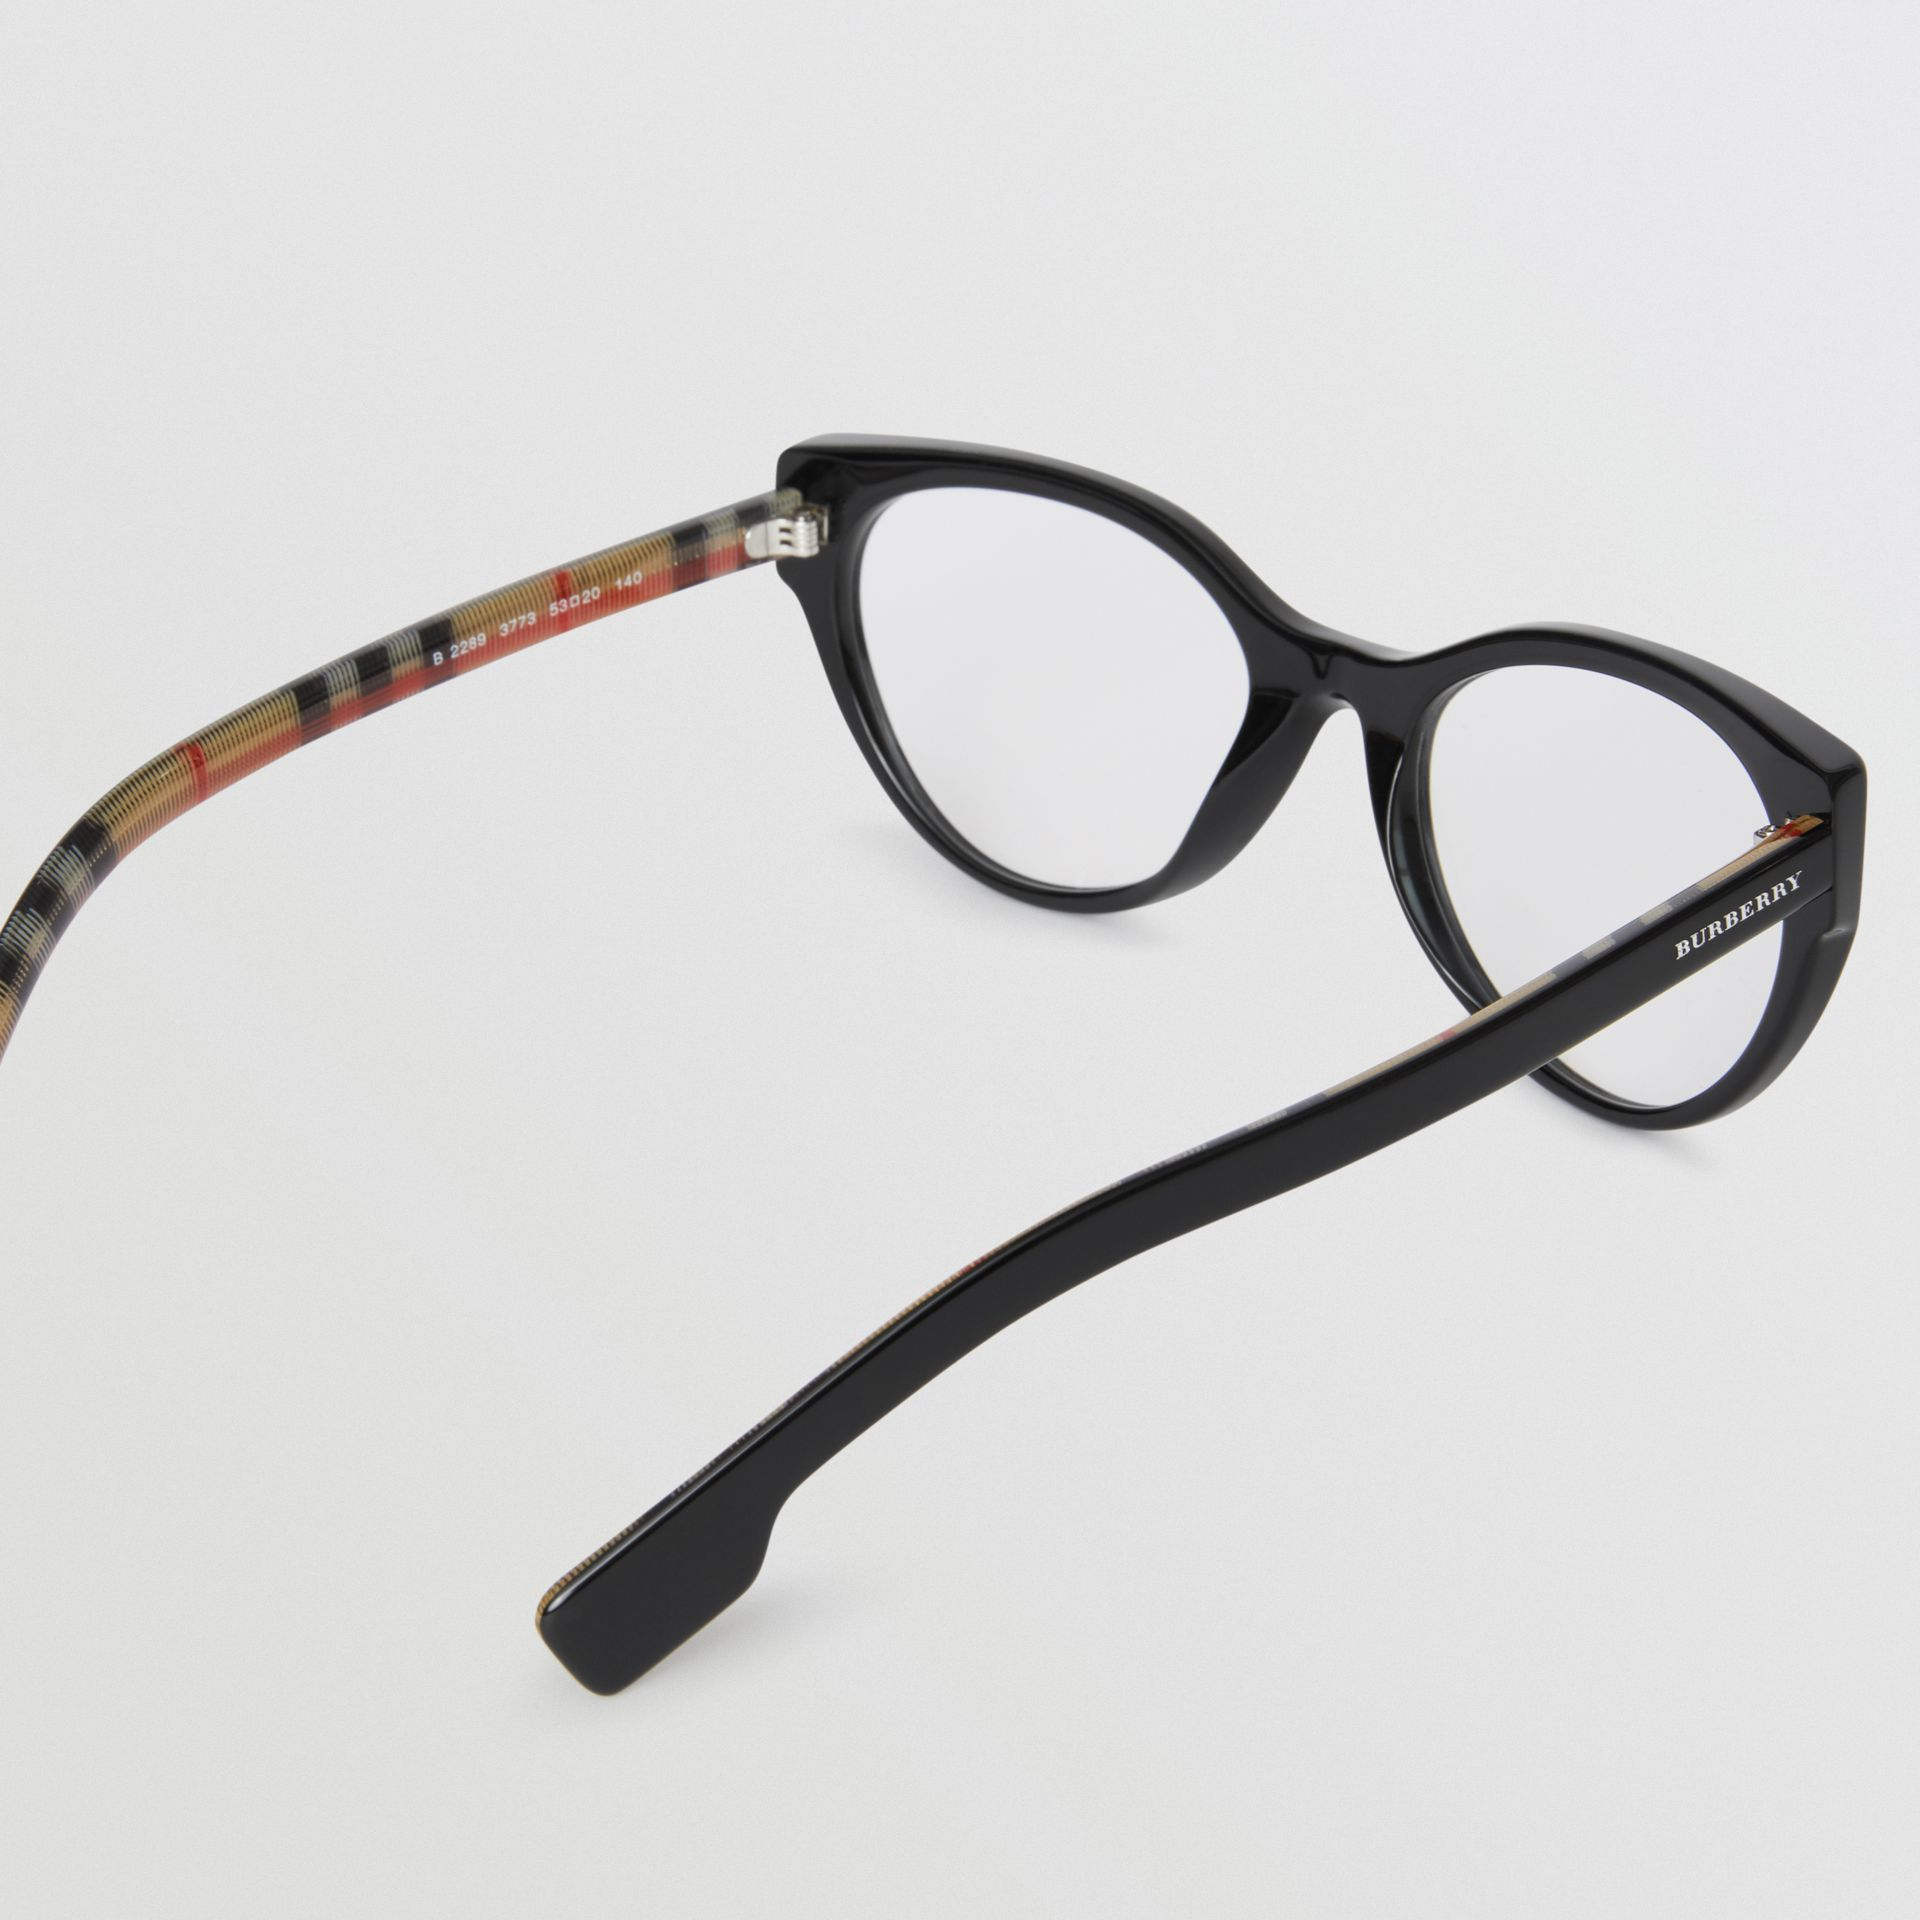 Vintage Check Detail Cat-eye Optical Frames in Black - Women | Burberry Australia - gallery image 3